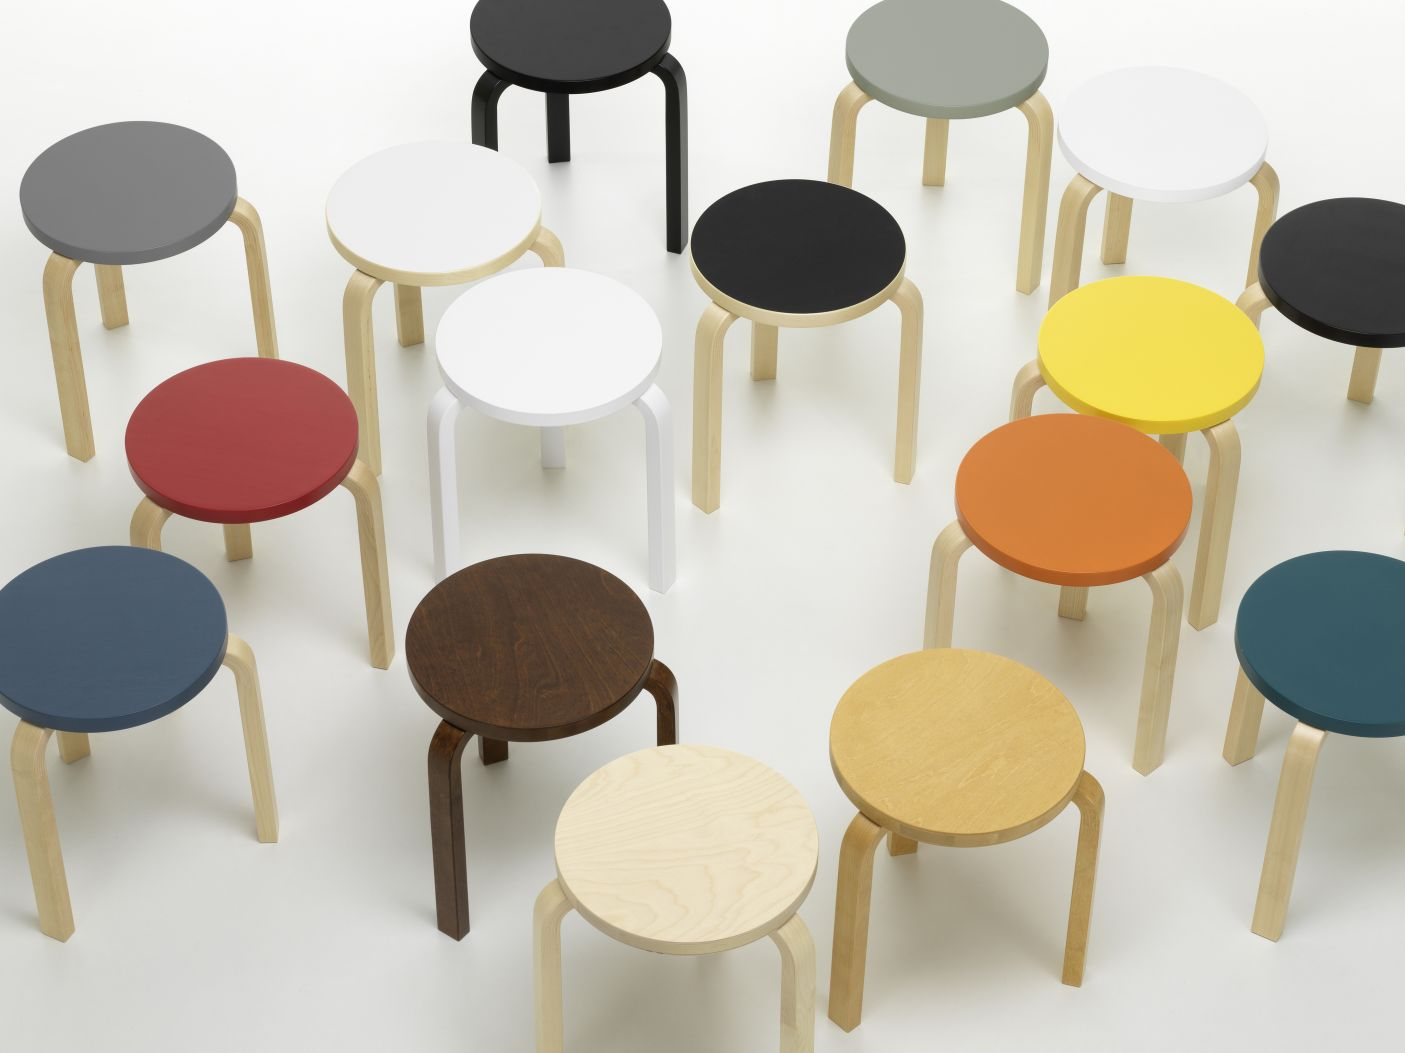 Stool-60-Group-colour-core-collection-2845212